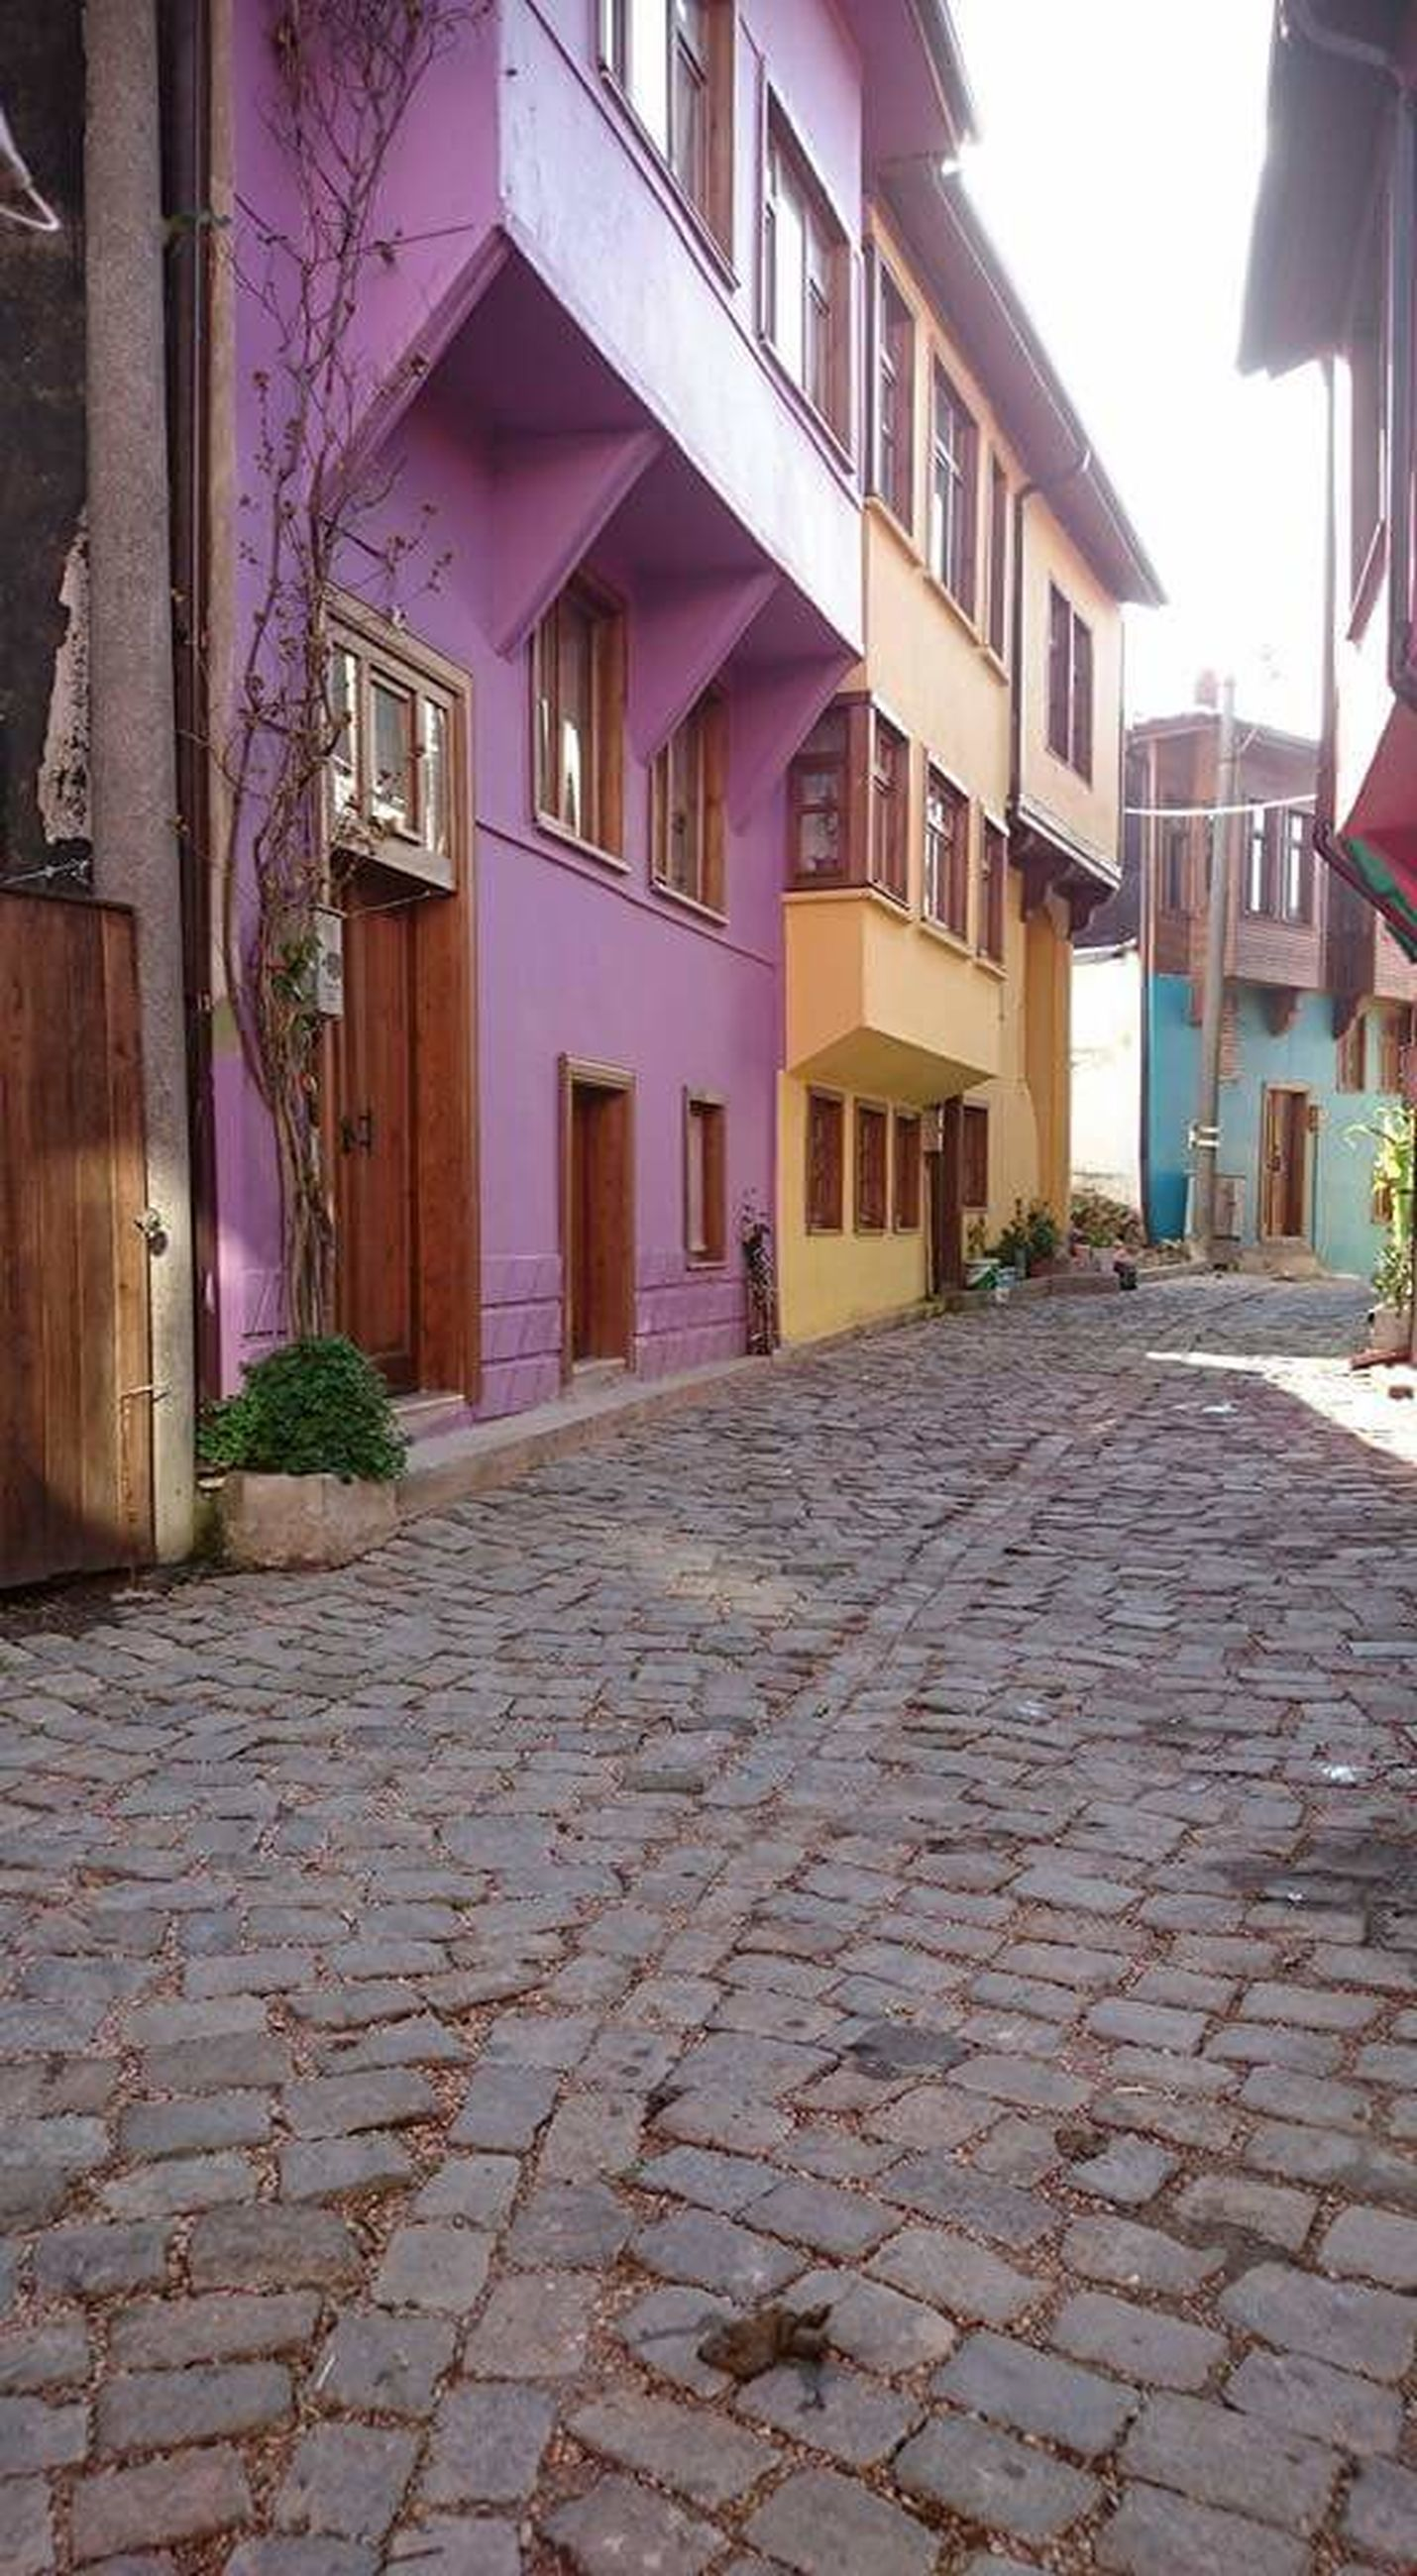 architecture, building exterior, built structure, cobblestone, house, city, multi colored, paving stone, day, in a row, the way forward, colorful, outdoors, city life, surface level, sky, footpath, no people, long